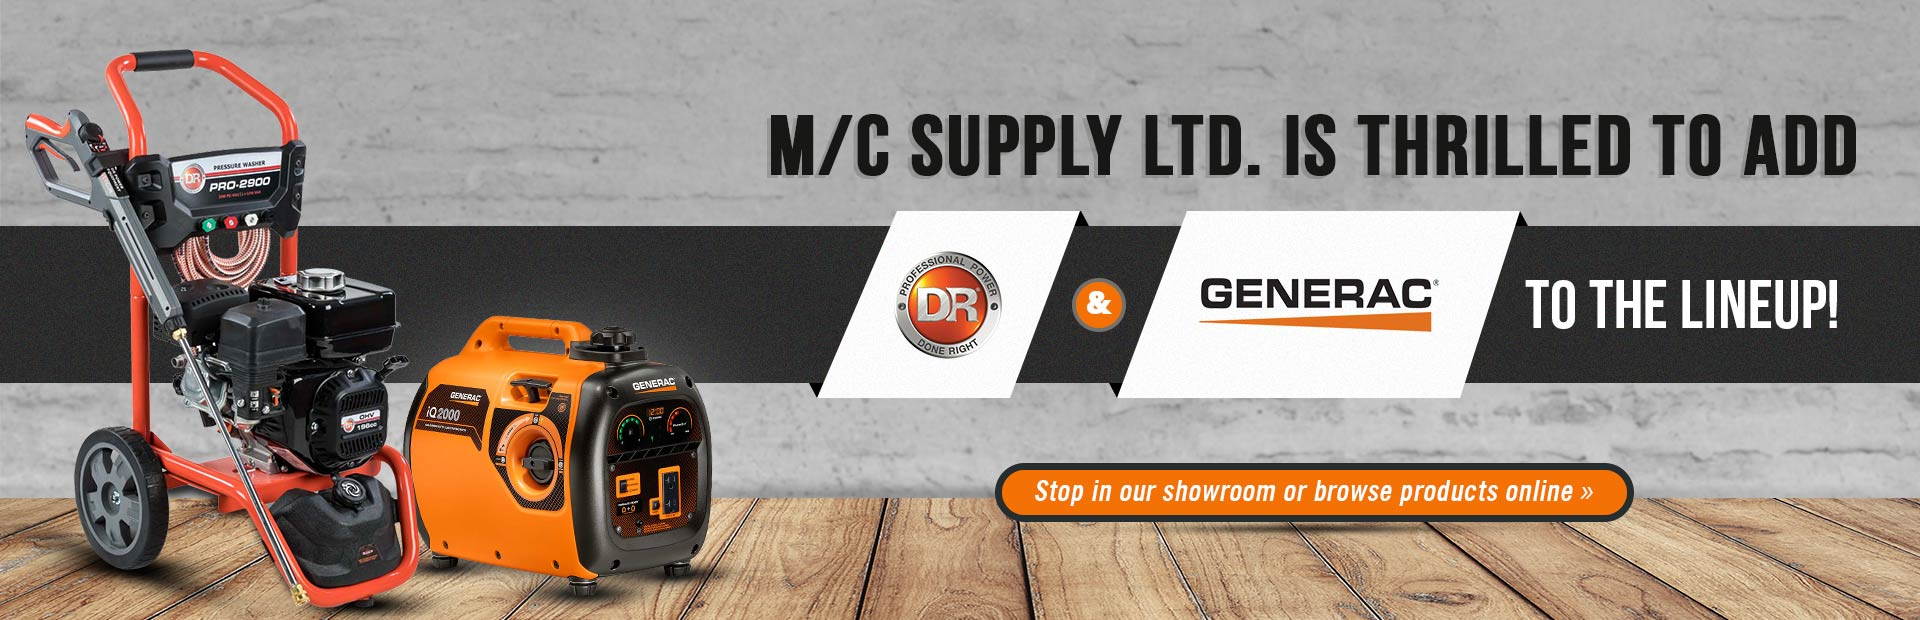 M/C Supply Ltd. is thrilled to add DR Power and Generac to the lineup!